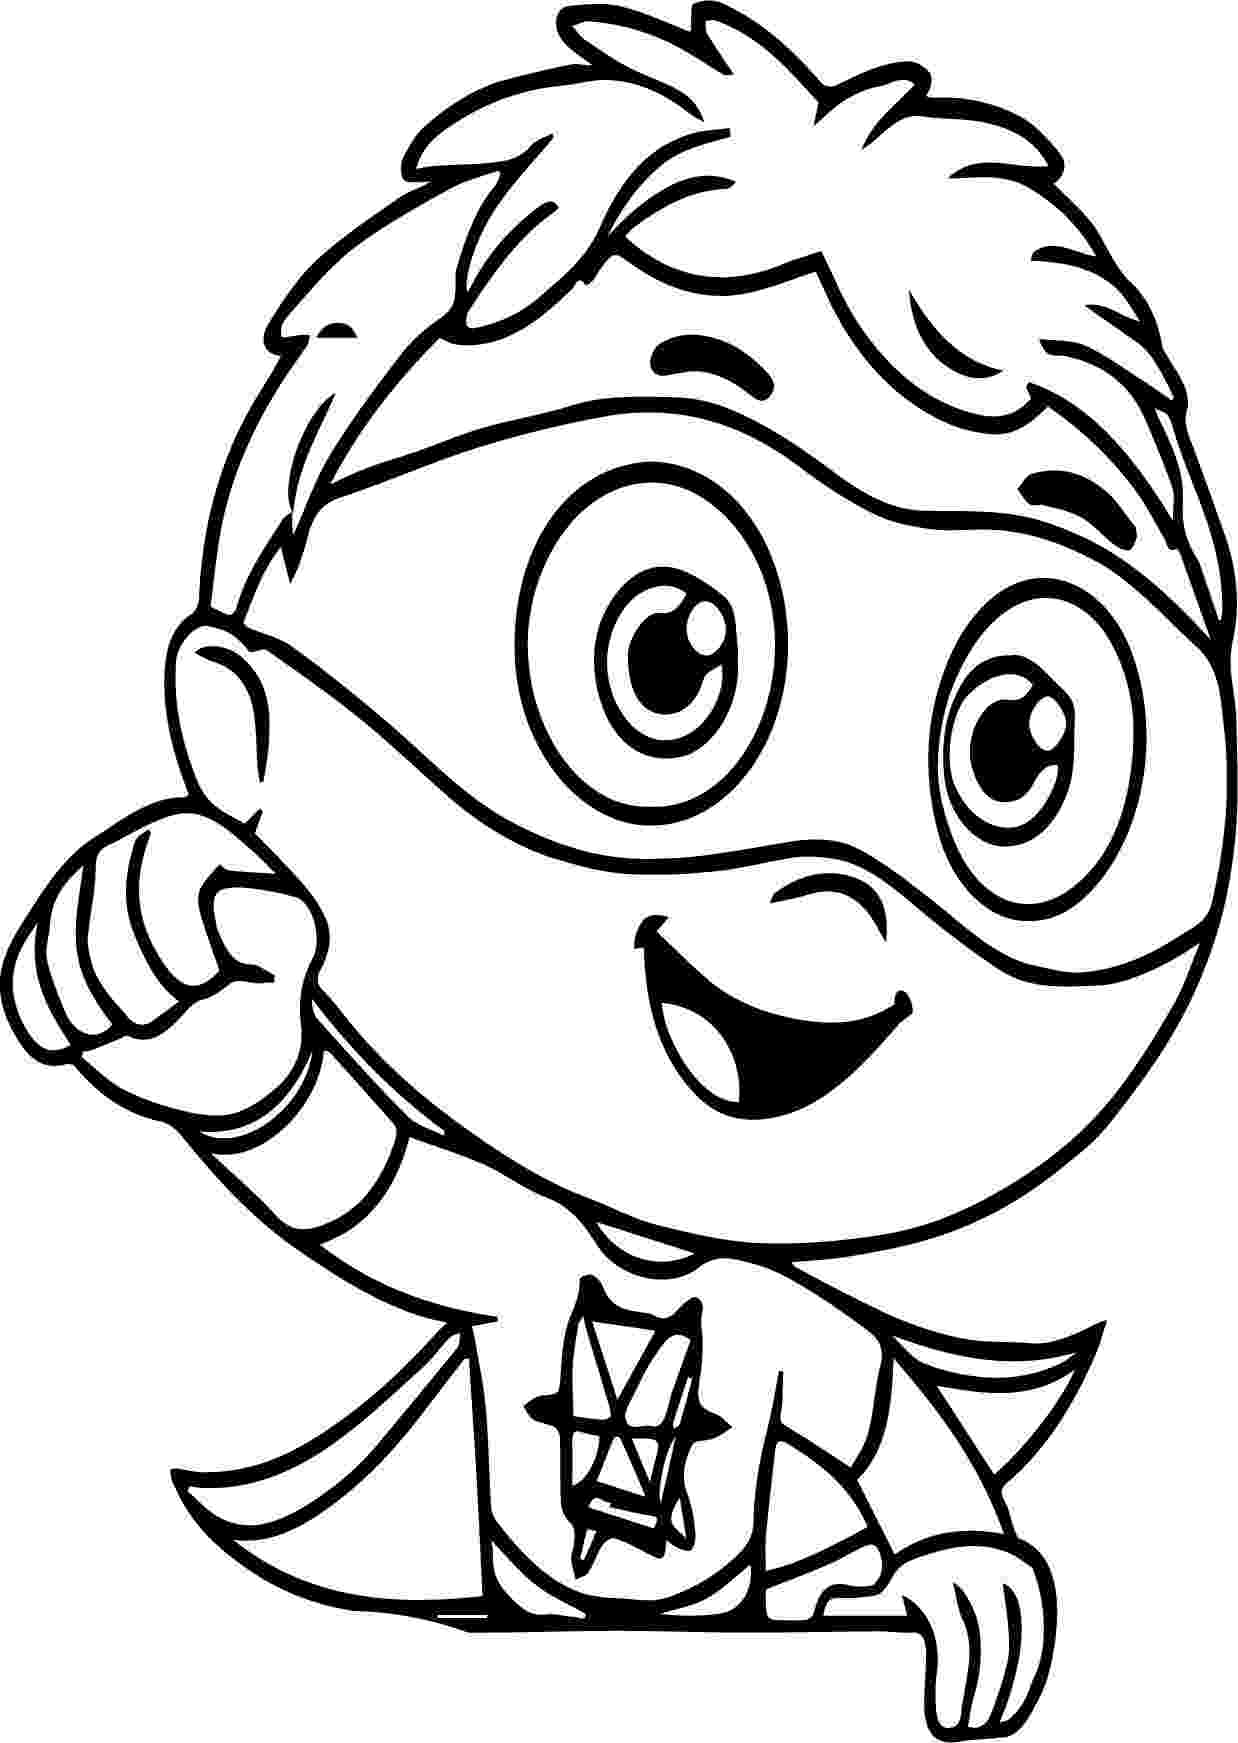 super colouring pages super why coloring pages best coloring pages for kids colouring super pages